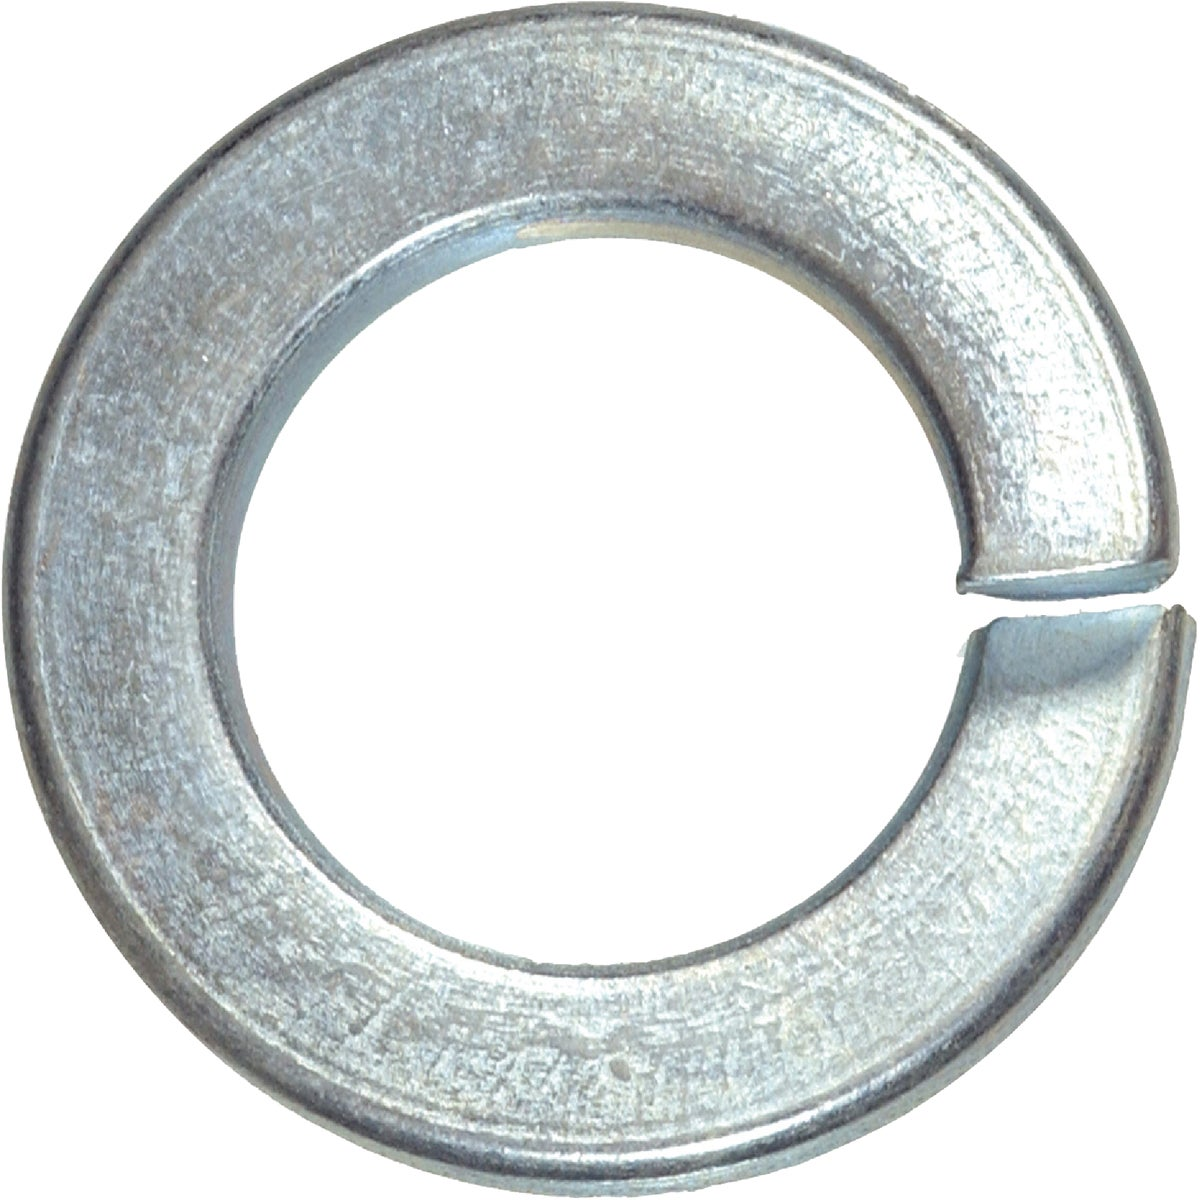 "3/8"" STEEL LOCK WASHER"